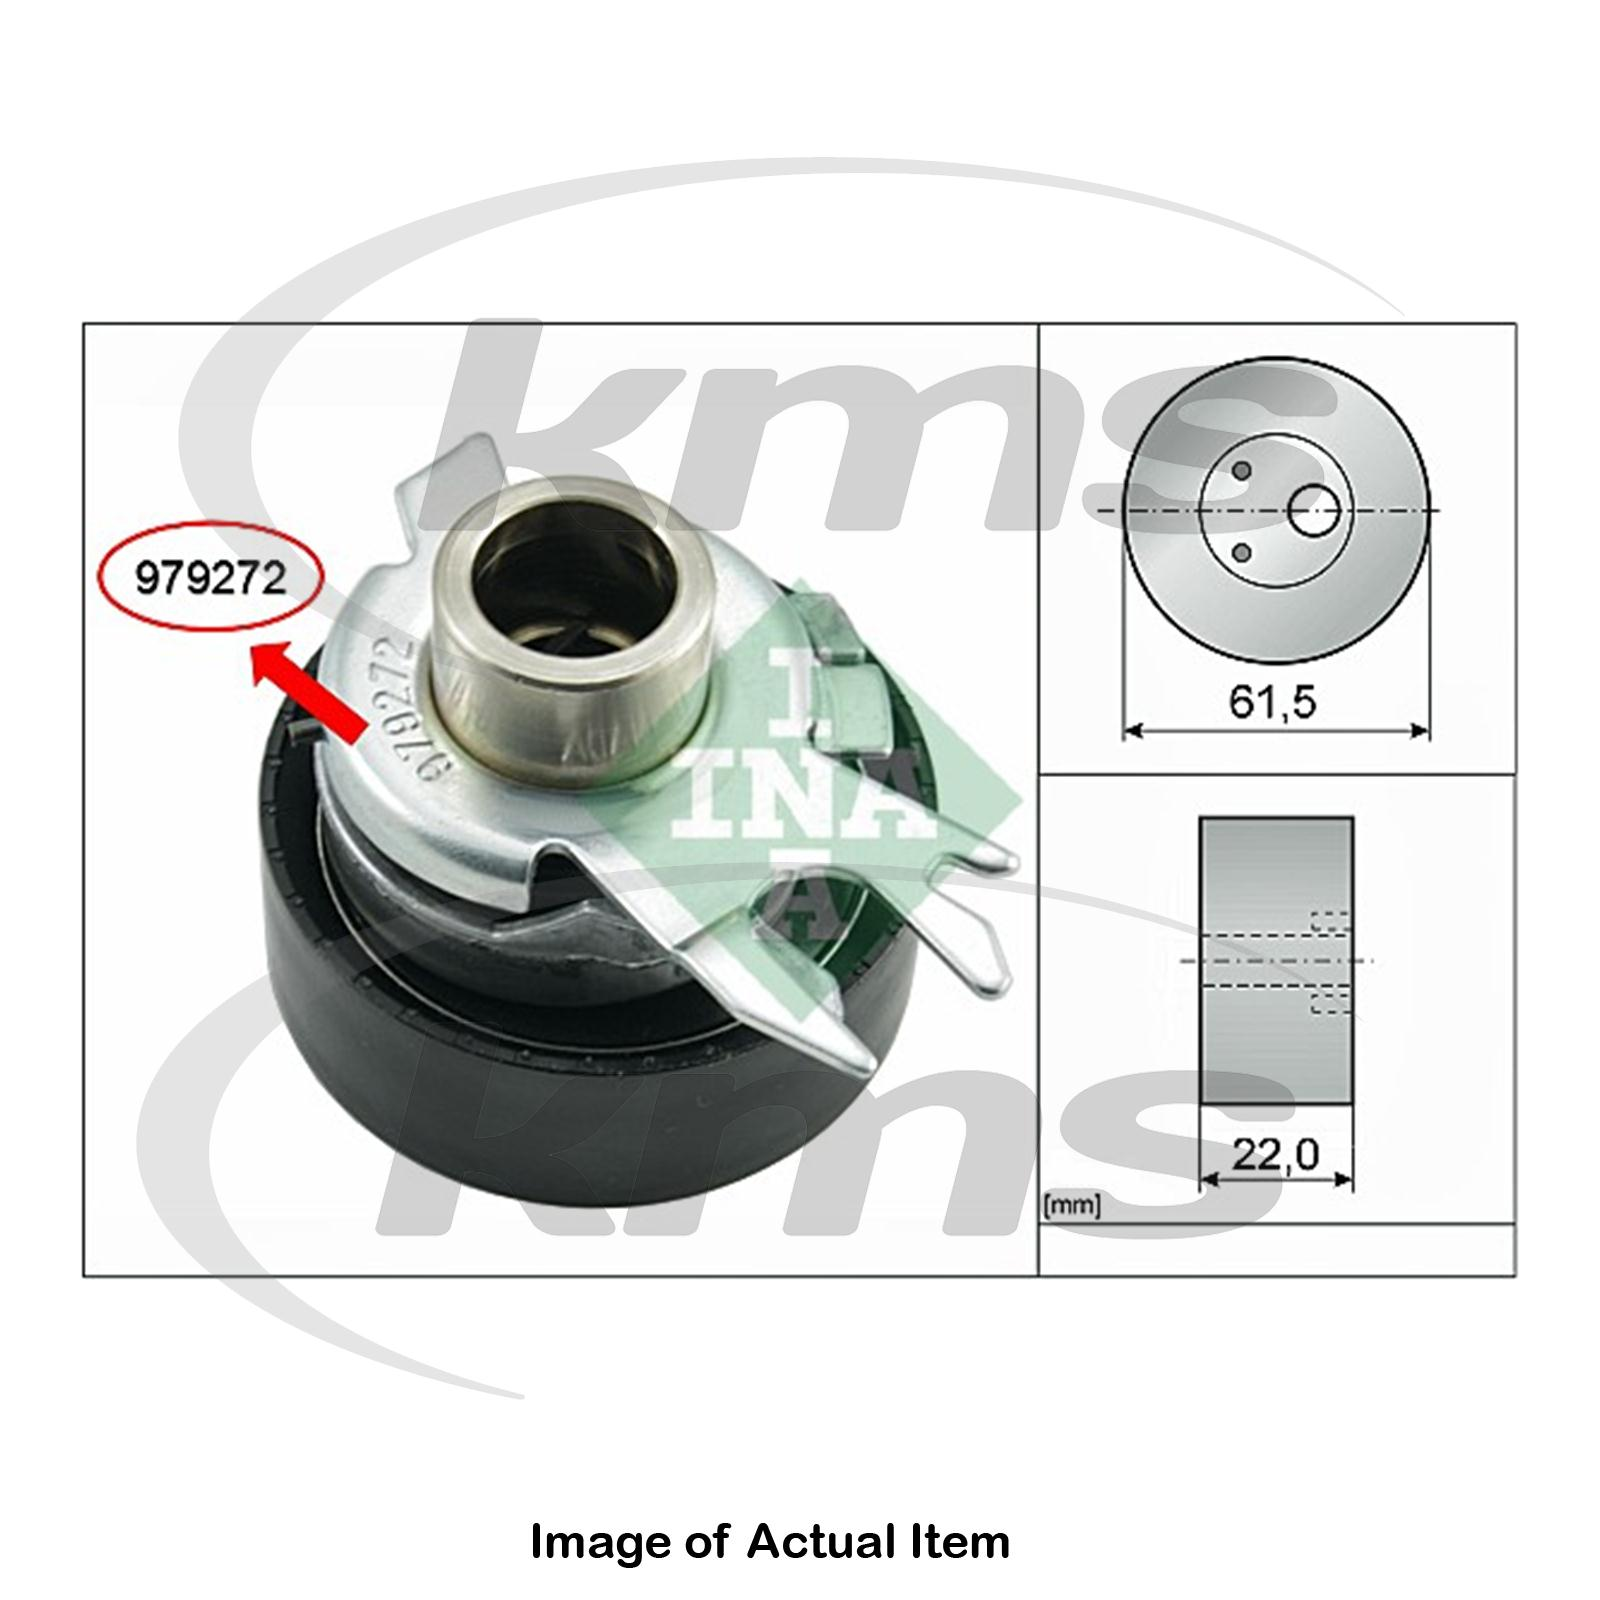 New Genuine Ina Timing Cam Belt Tensioner Pulley 531 0252 30 Top 2002 Mazda 626 Sentinel German Quality